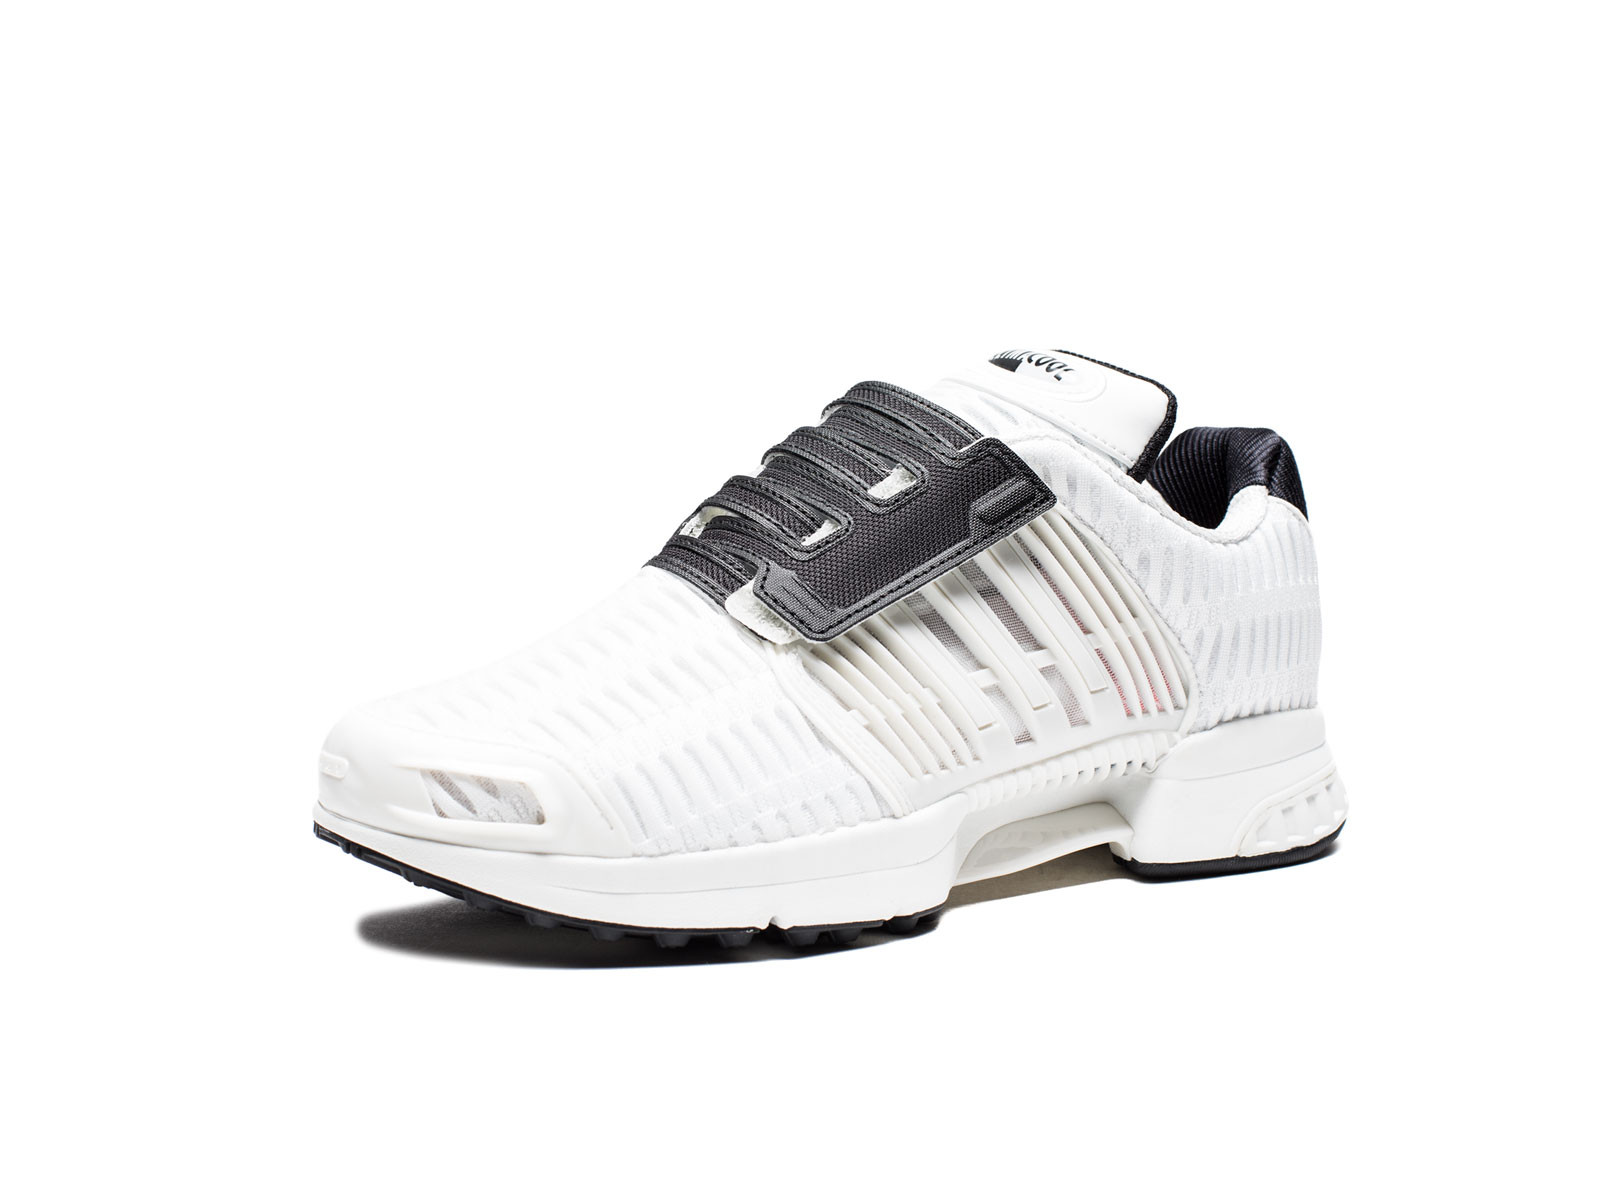 big sale 2530a 16f65 Very Goods  ADIDAS CLIMACOOL 1 CMF - VIN WHITE  Undefeated